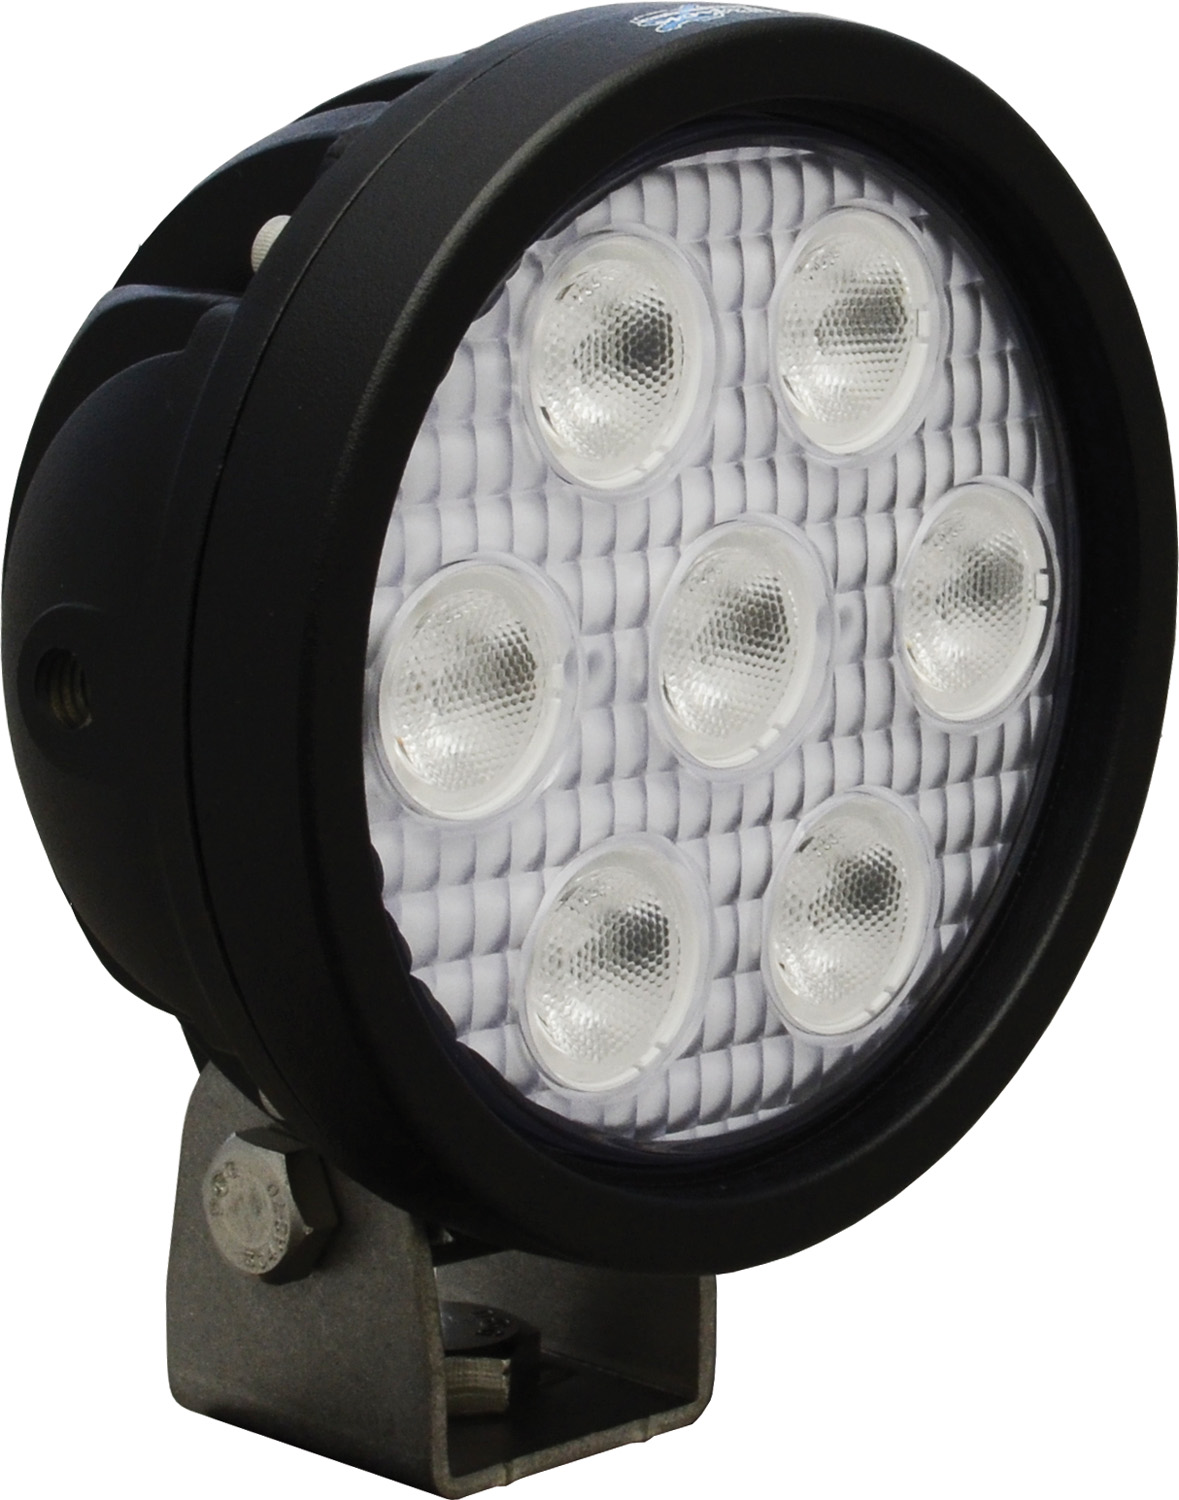 "4"" ROUND UTILITY MARKET BLACK 7 3W BLUE LED'S 40? WIDE"